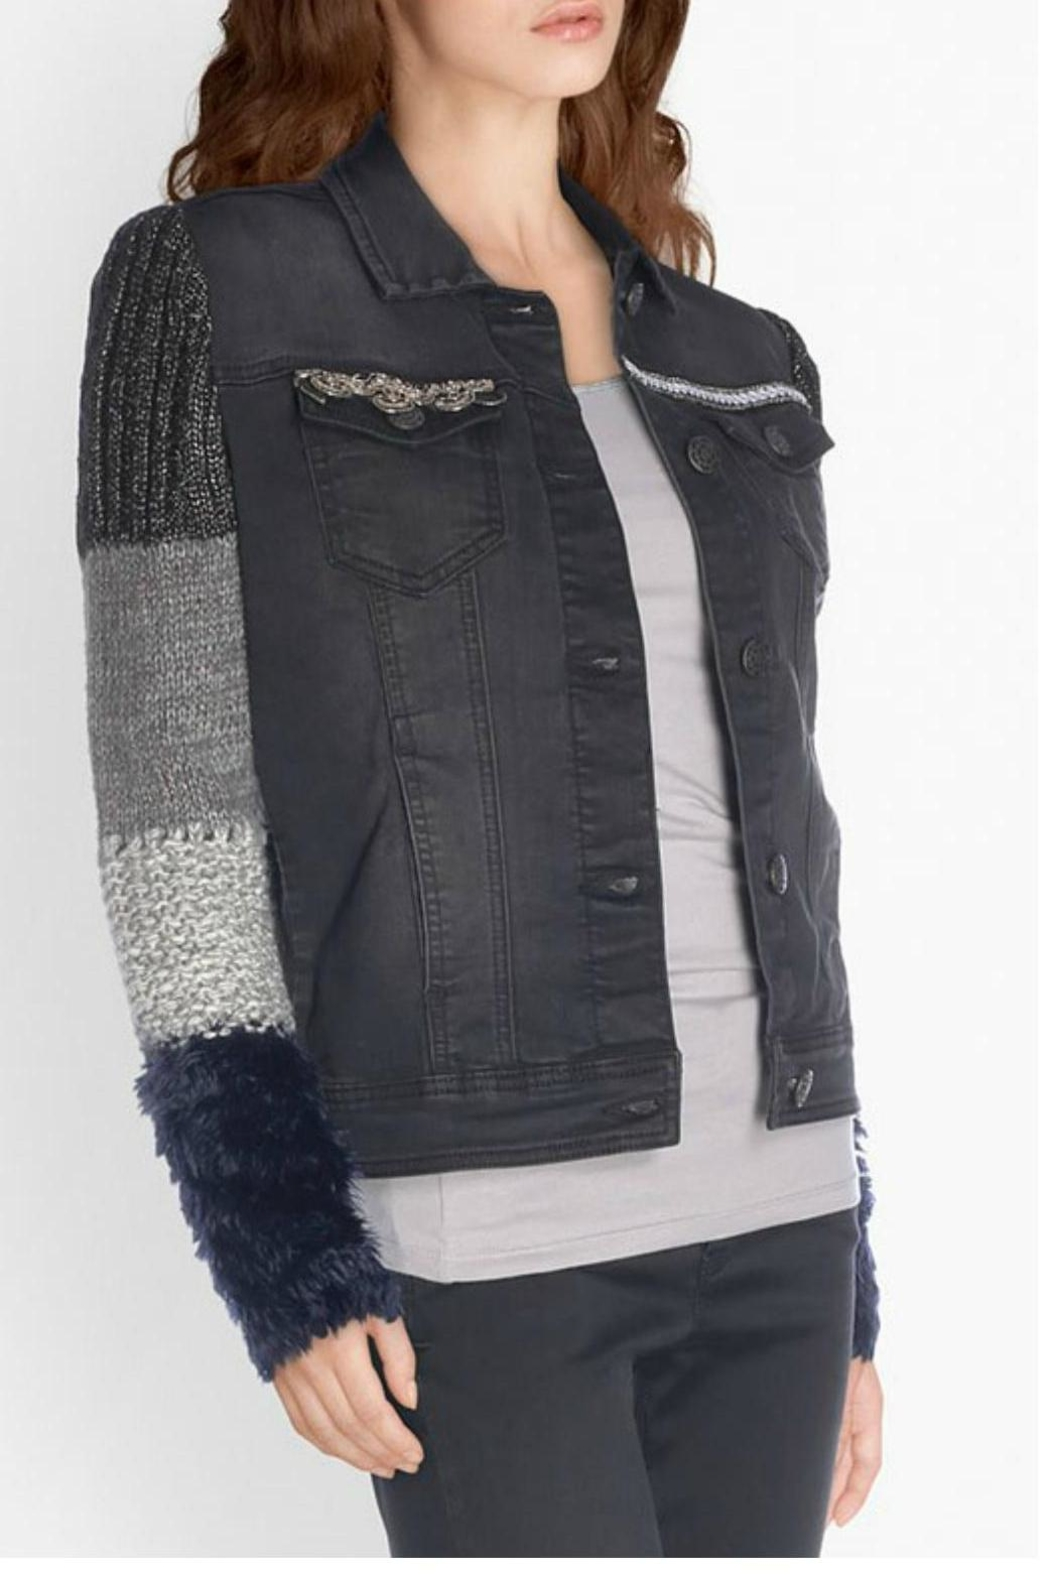 Desigual - Spain Black Denim Jacket - Main Image